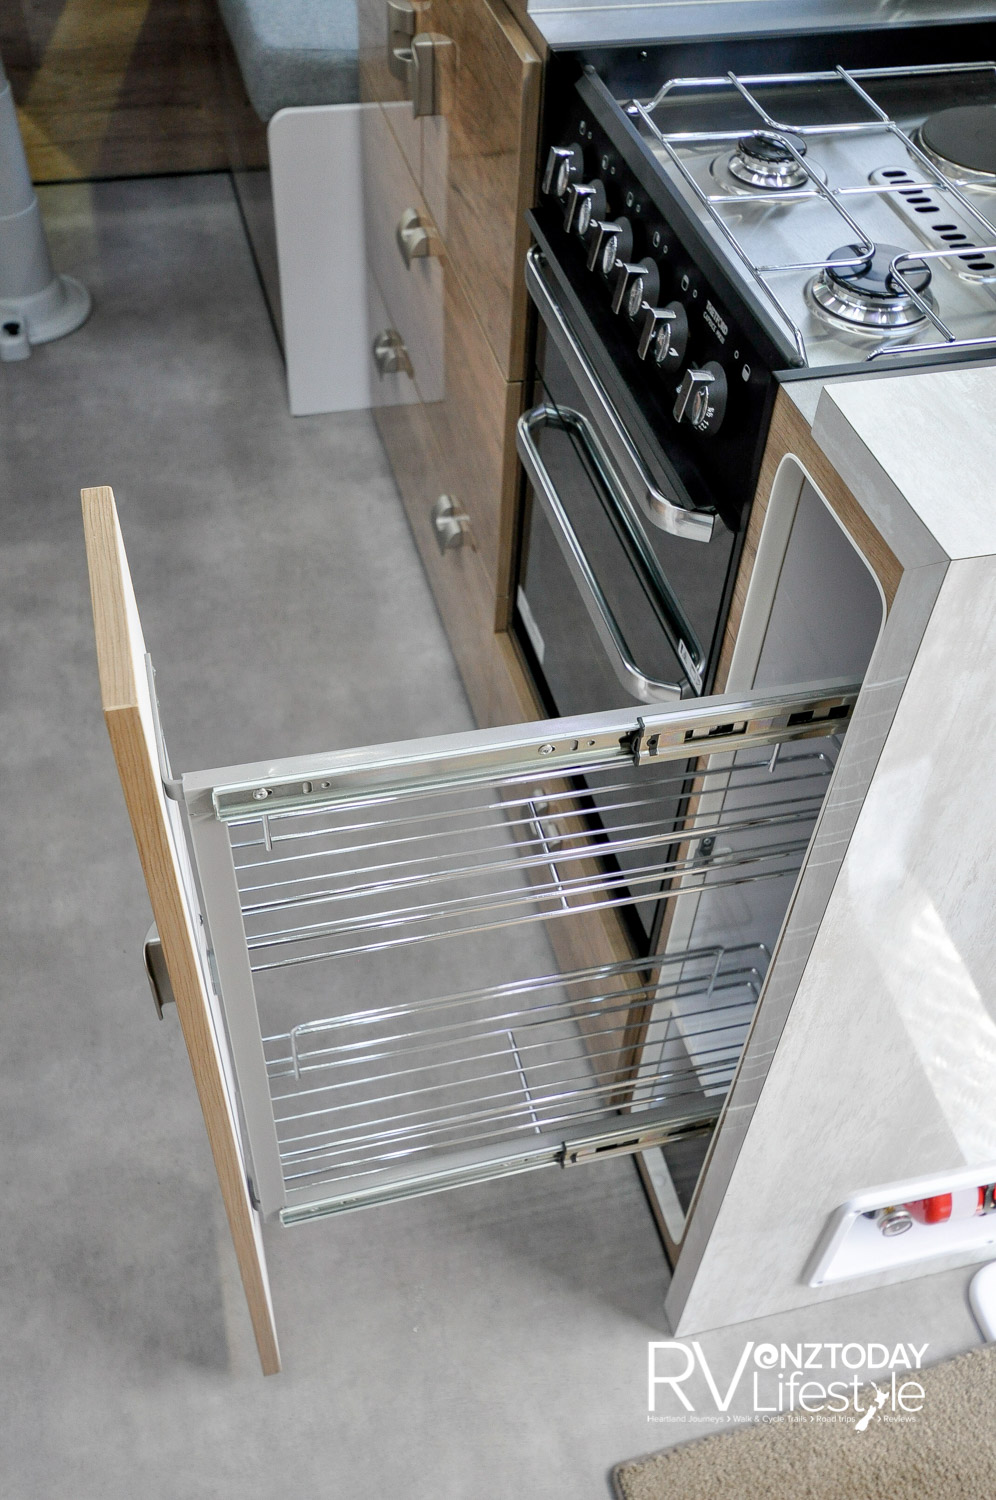 A pull-out pantry slider beside the full gas oven with separate grill, 3 gas burners and 1 electric